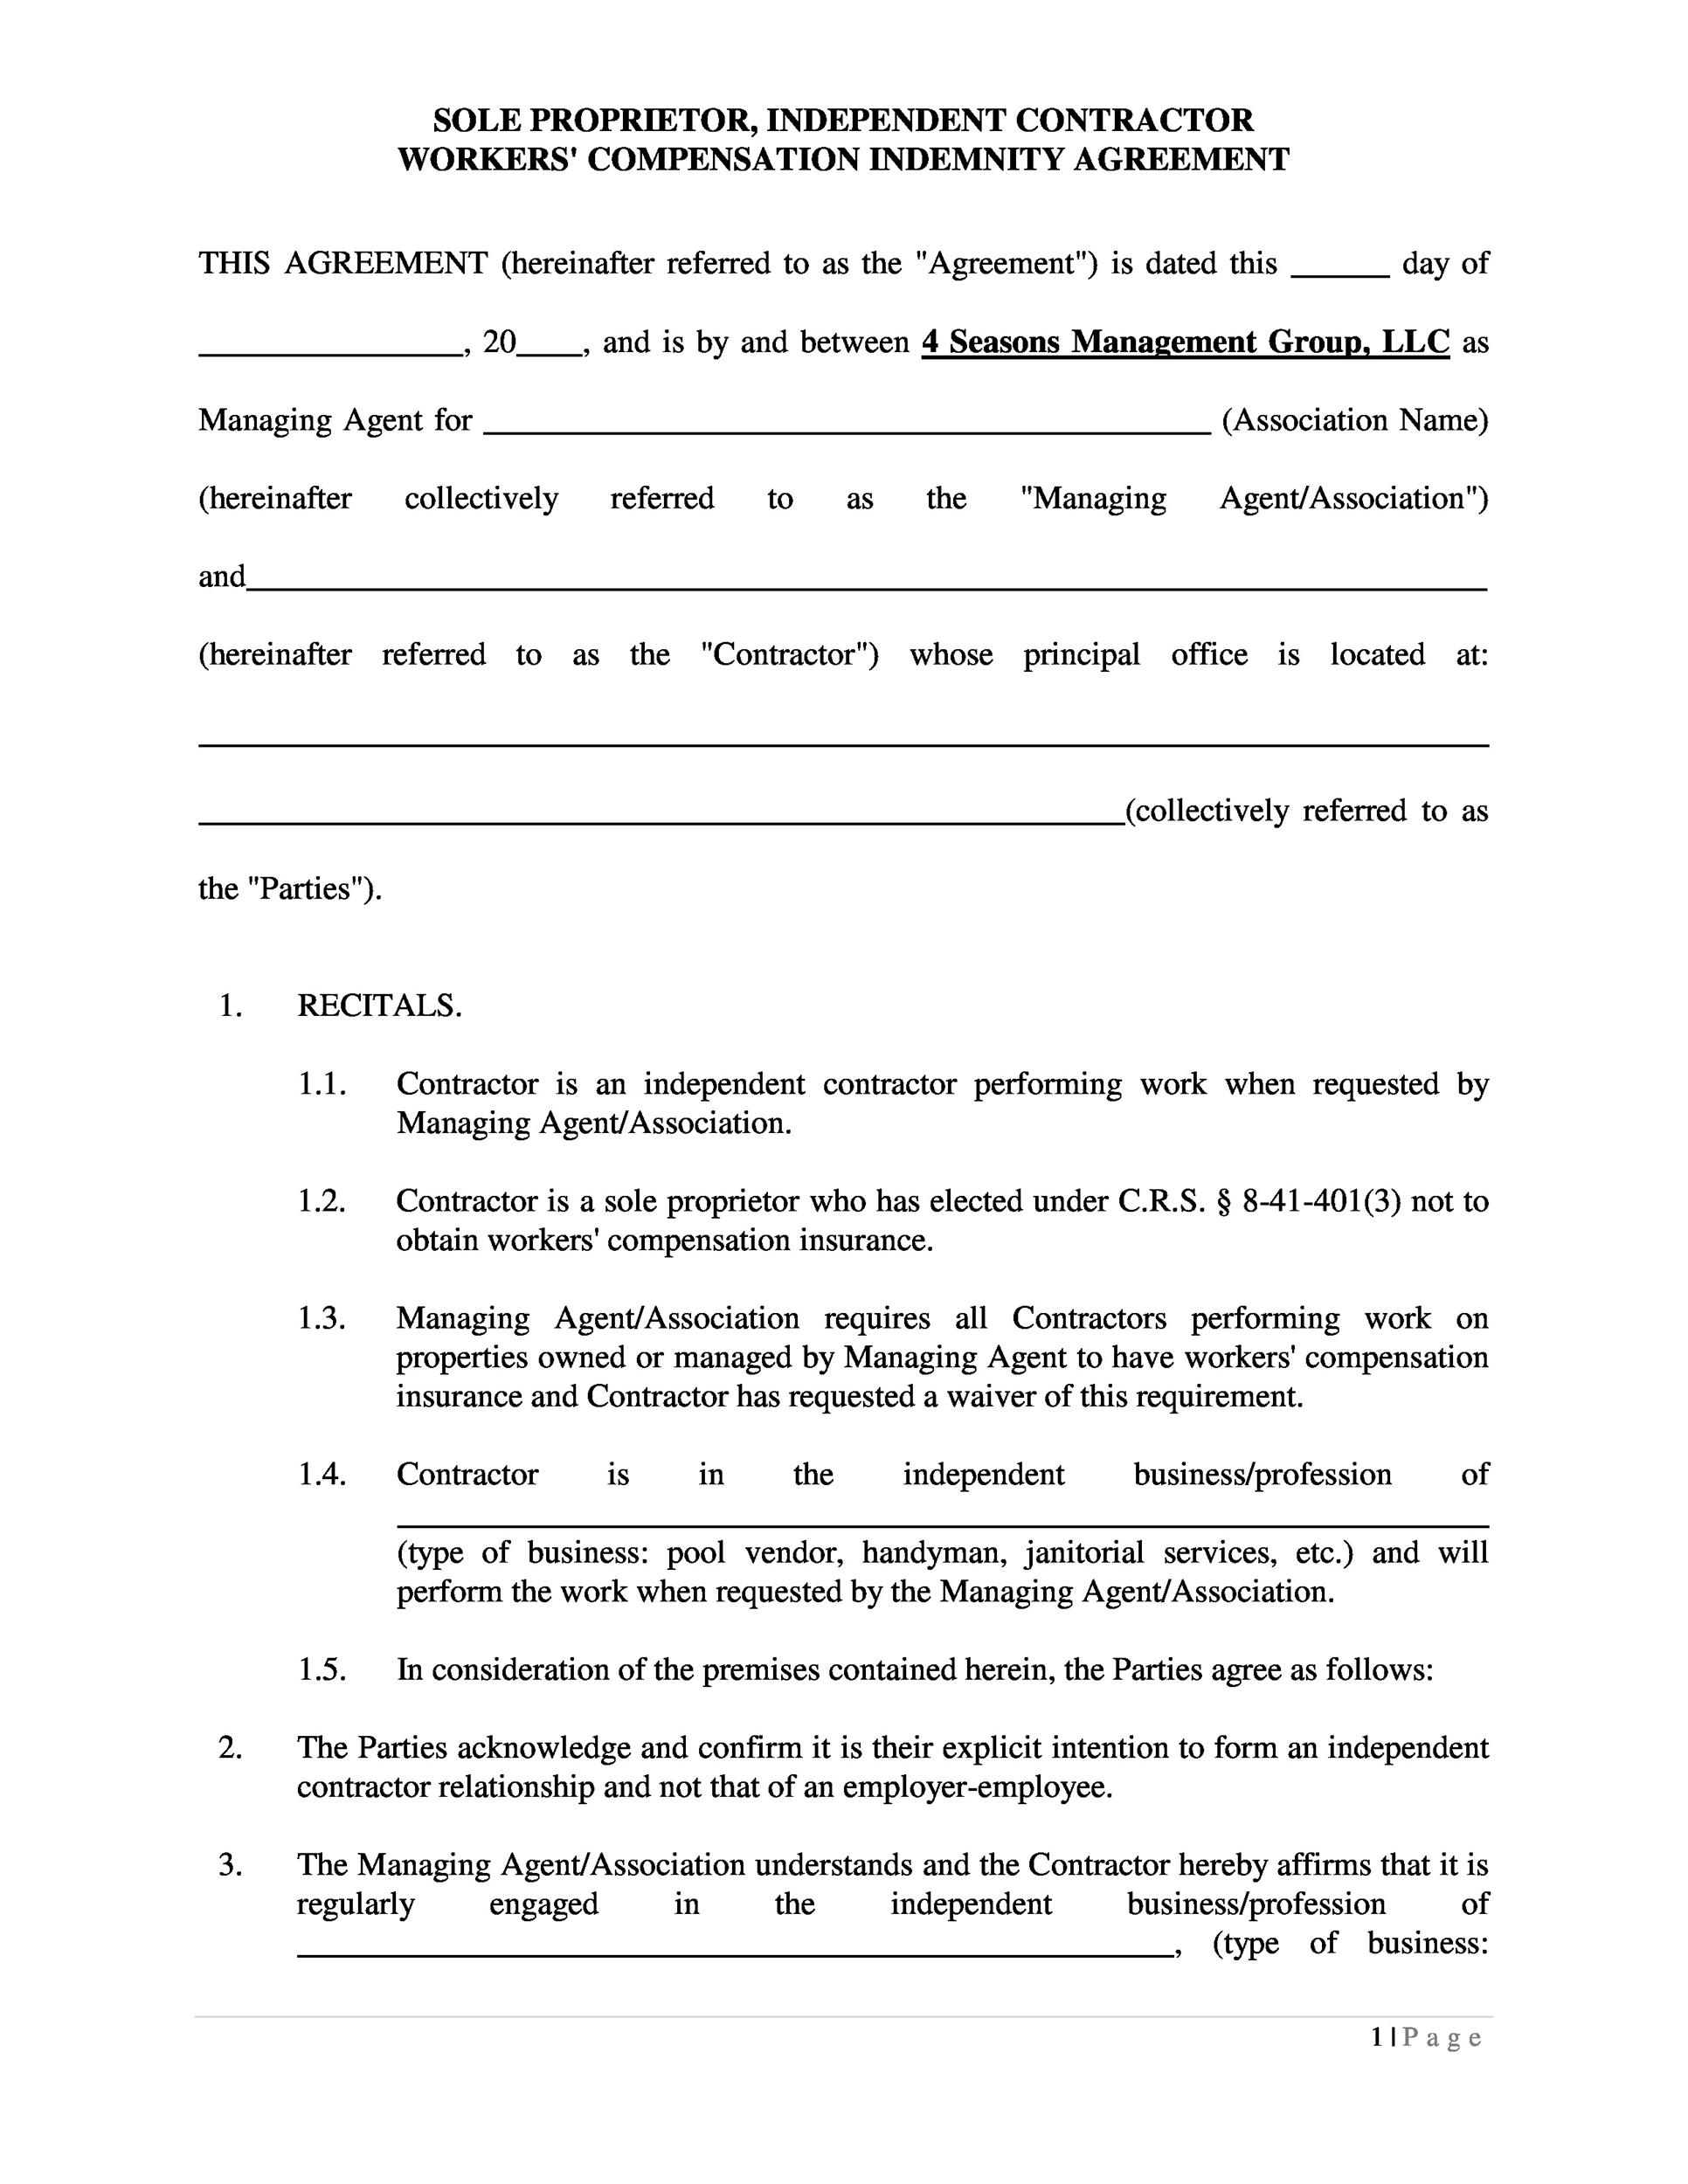 example contract of an independent contractor